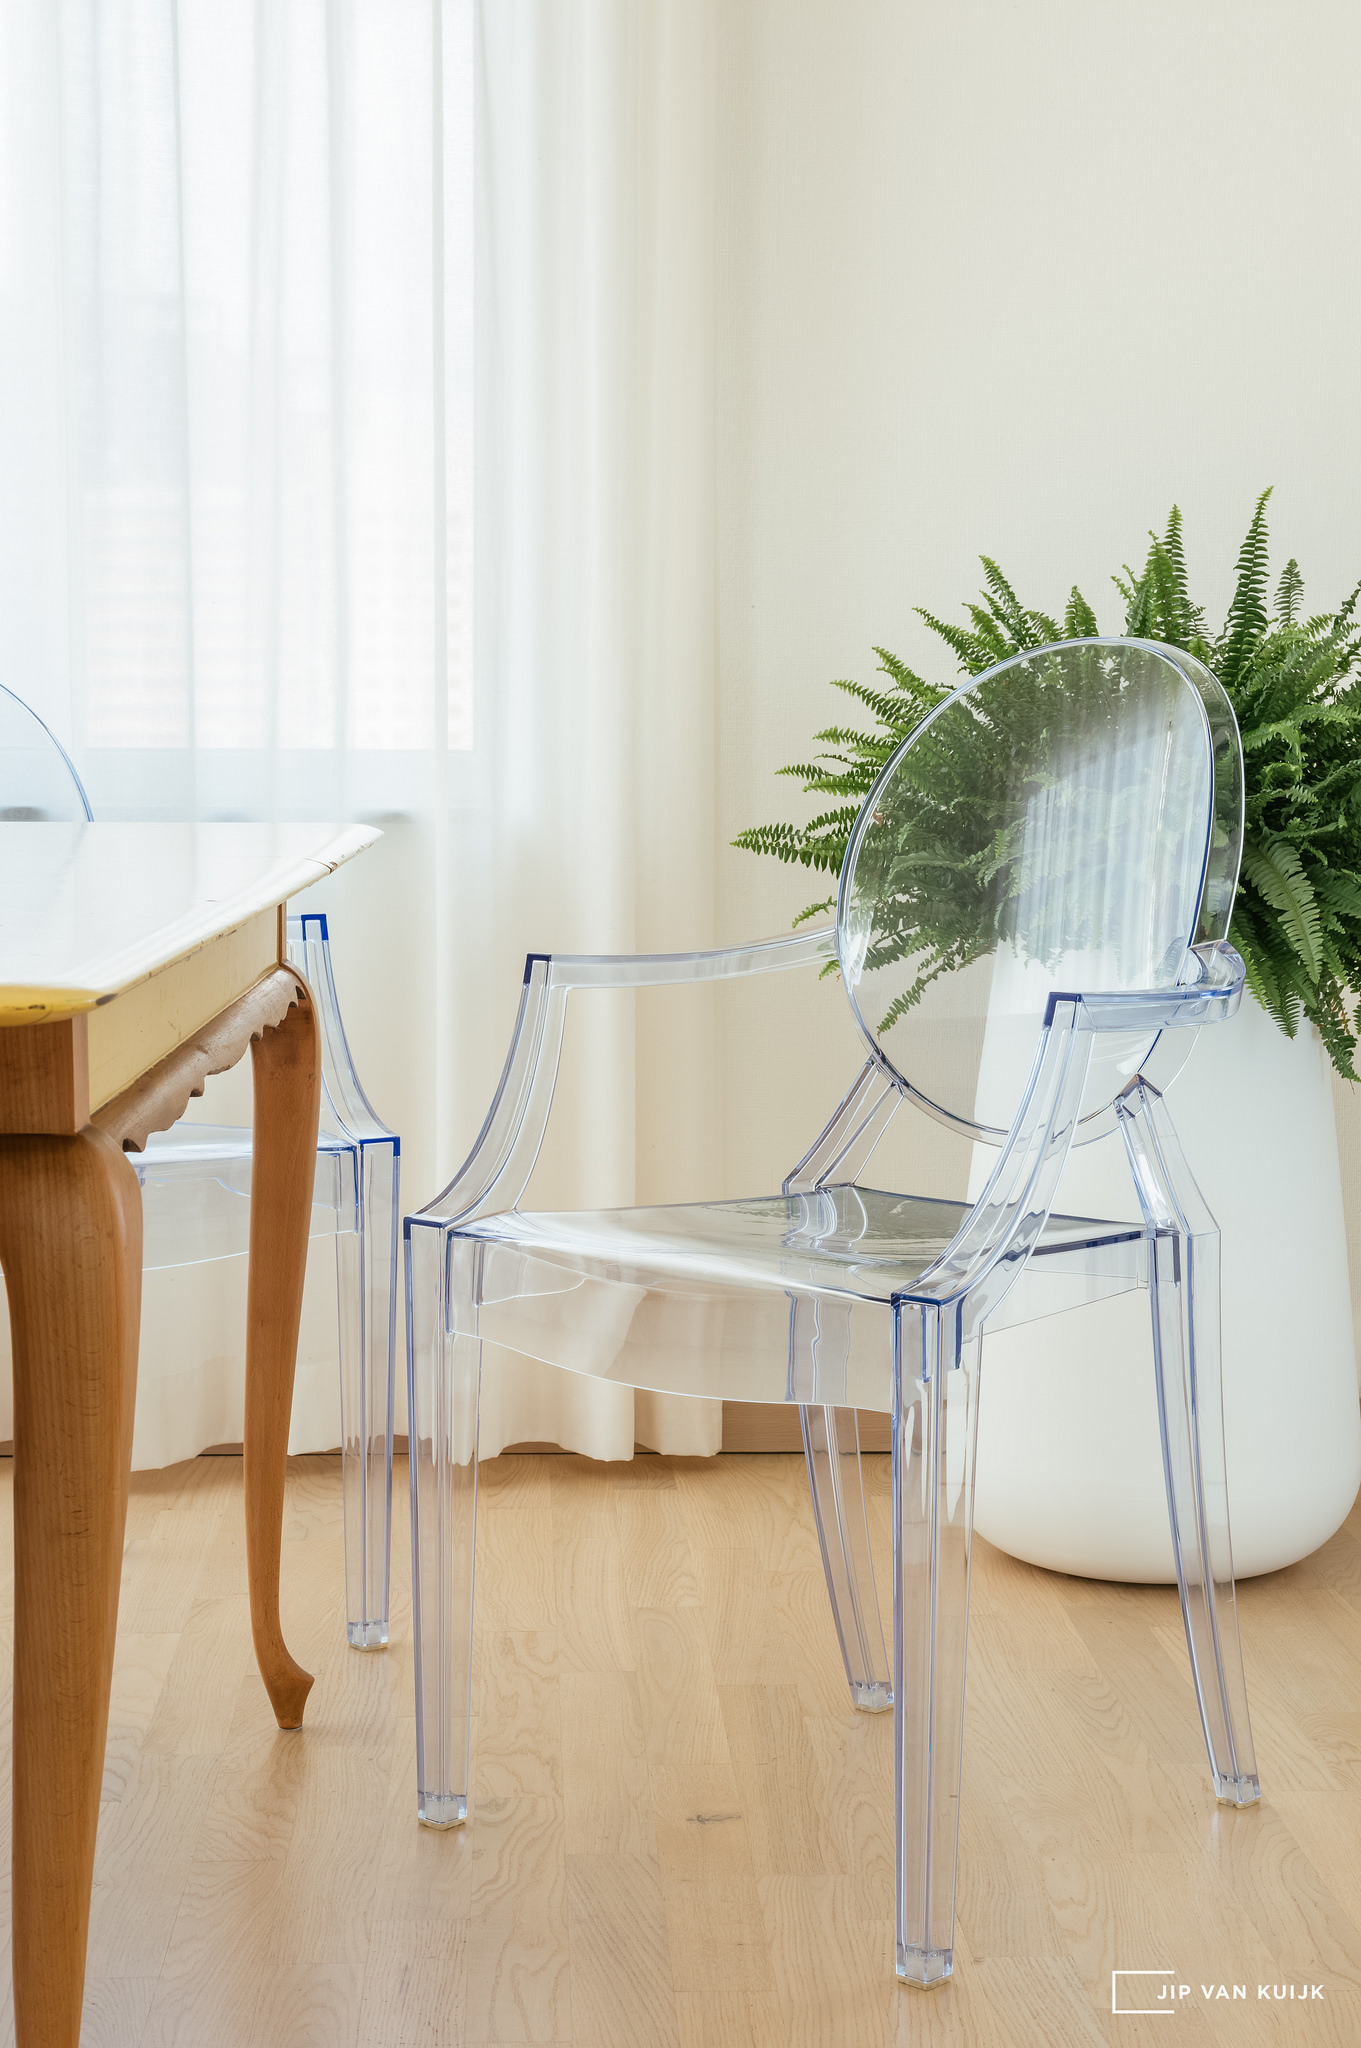 kartell philippe starck louis ghost leica s typ006 70mm chair jipvankuijk